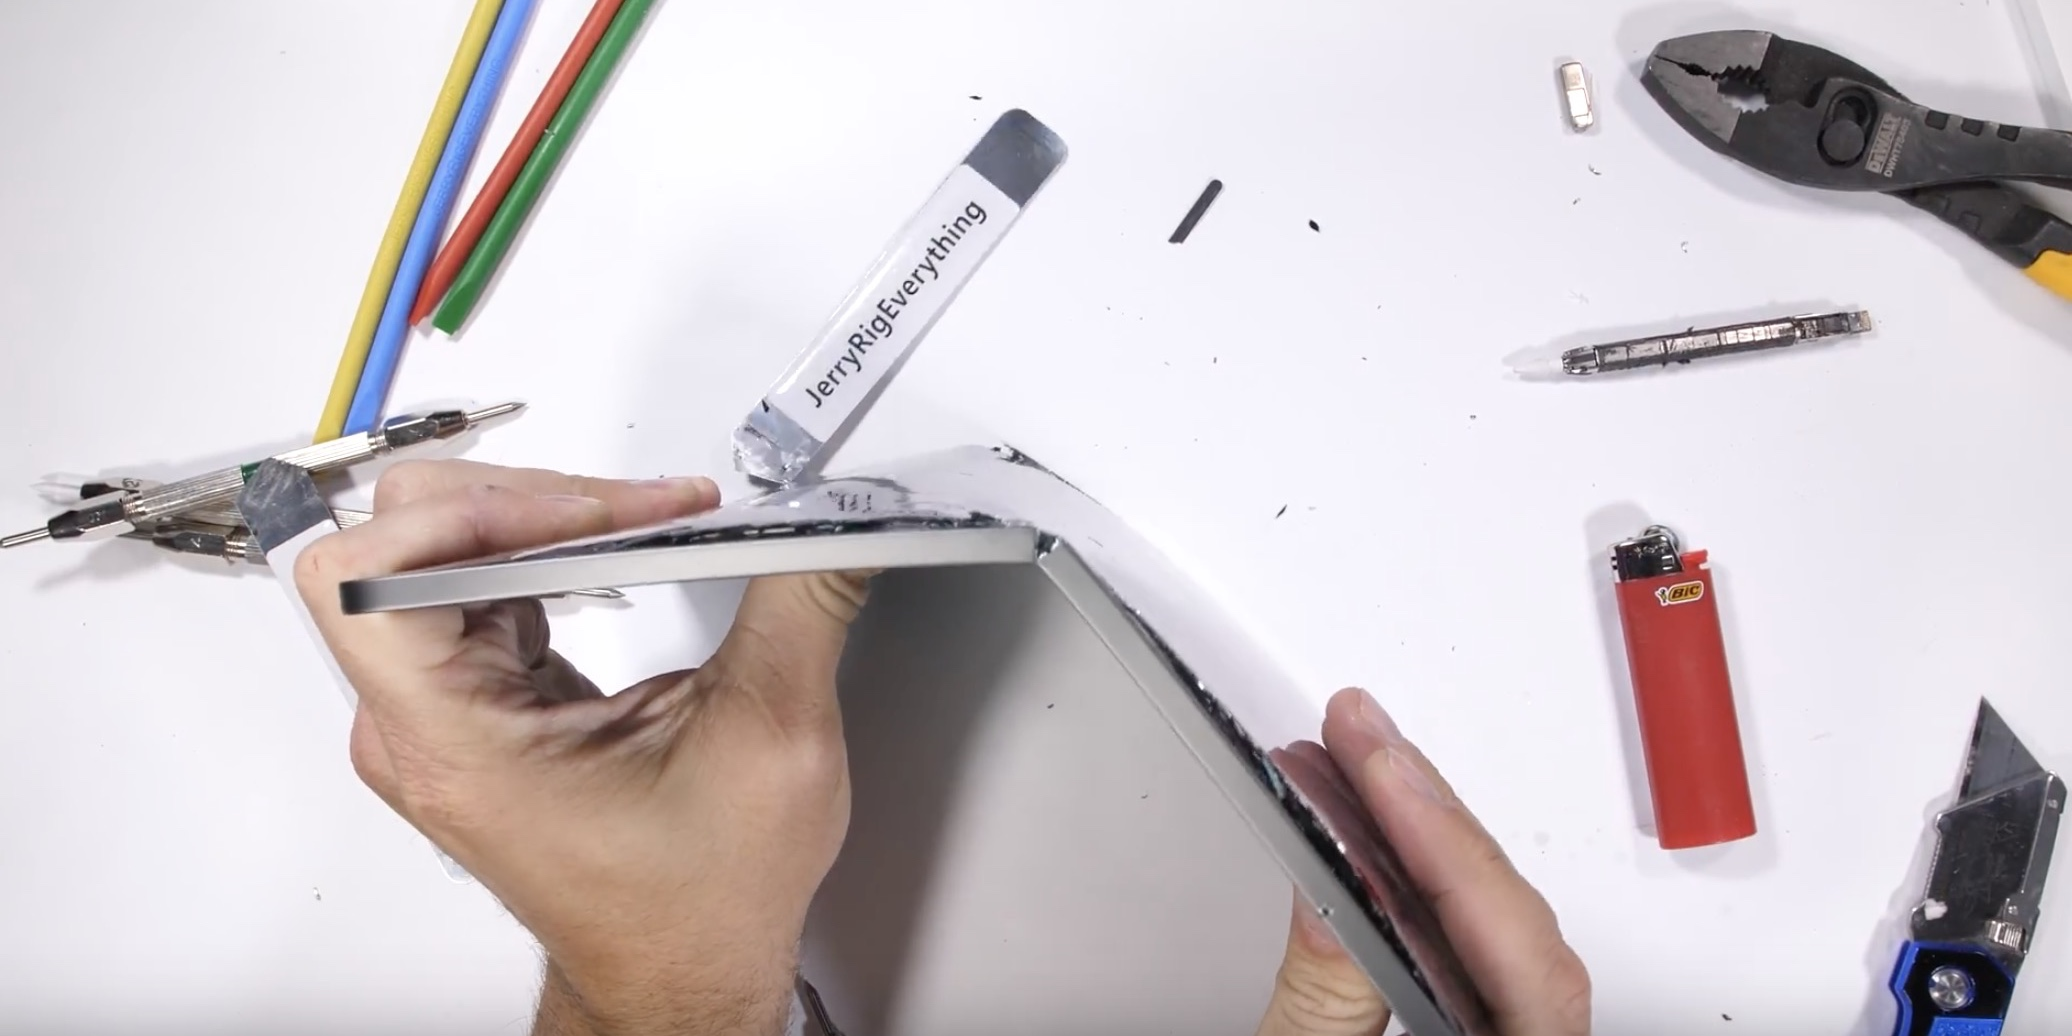 Durability test shows iPad Pro can be bent in half with relatively little force [Video]